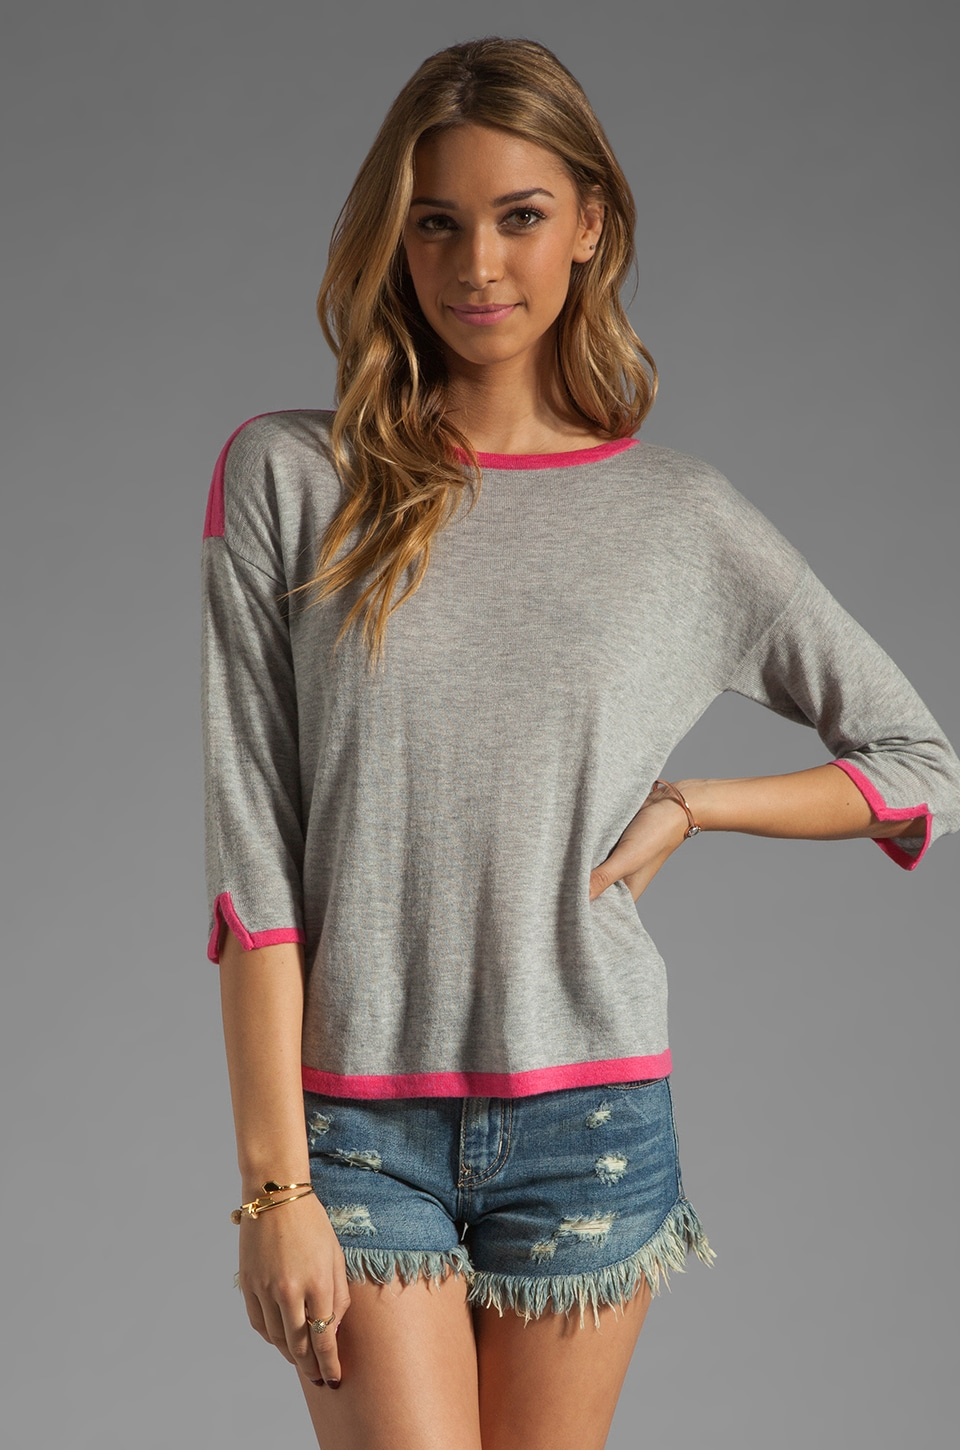 C&C California 3/4 Sleeve Boat Neck Sweater in Heather Grey/Fuchsia